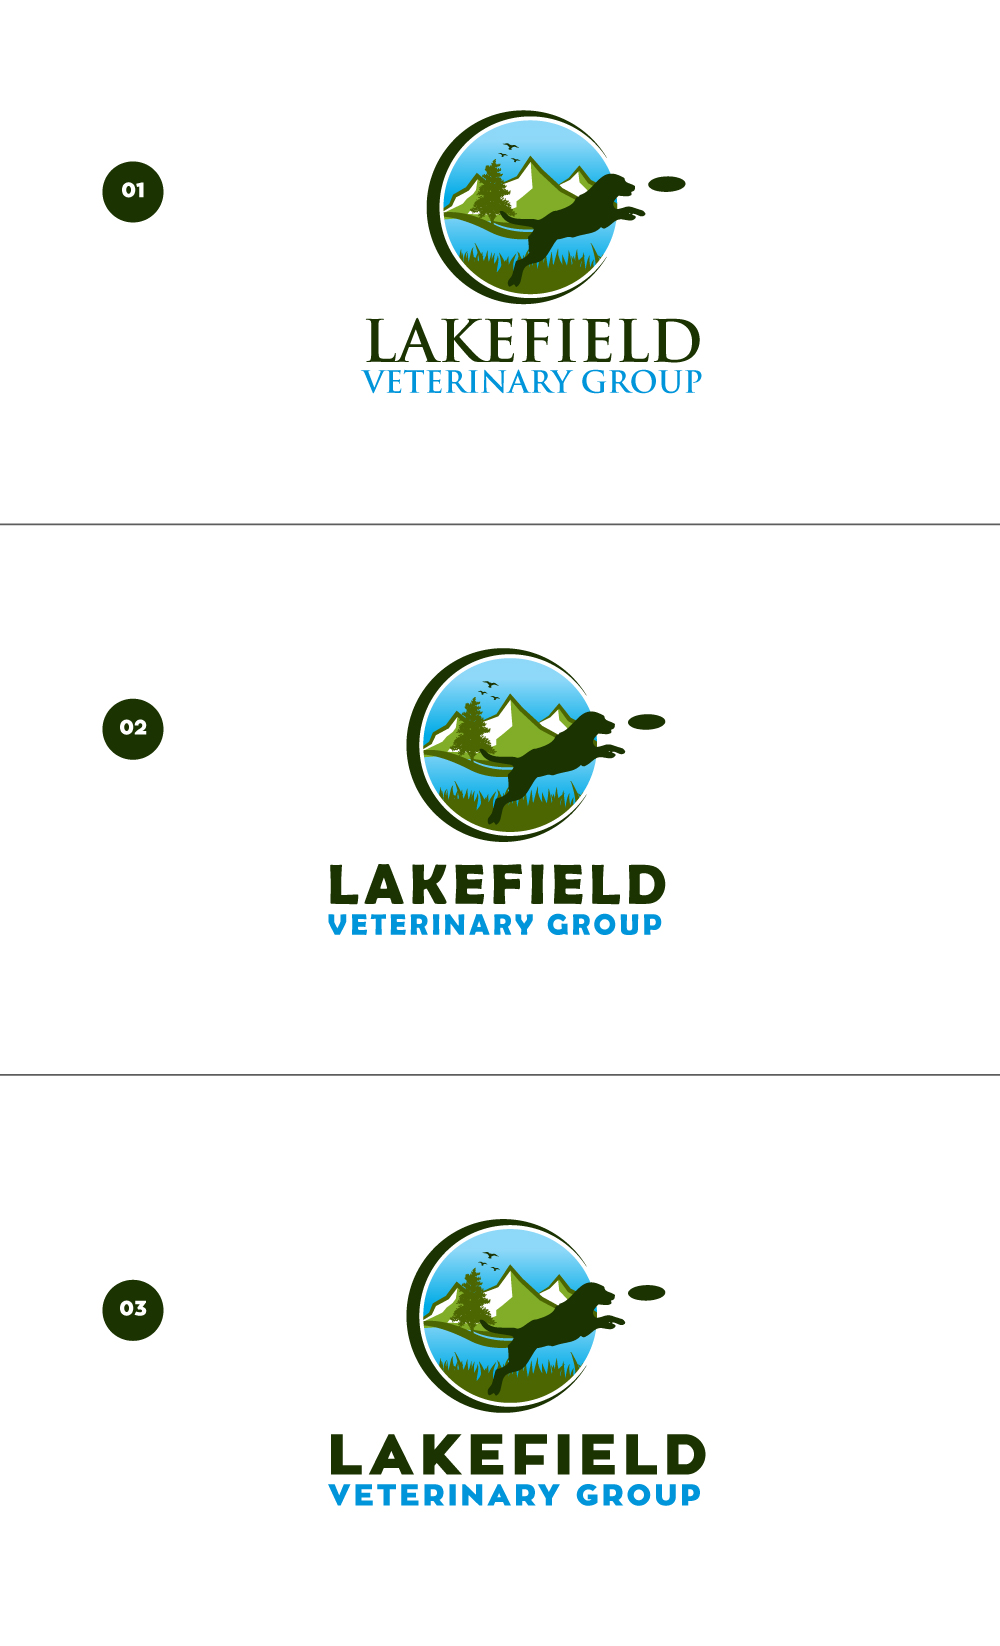 Logo Design by Tauhid Shaikh - Entry No. 69 in the Logo Design Contest Inspiring Logo Design for Lakefield Veterinary Group.